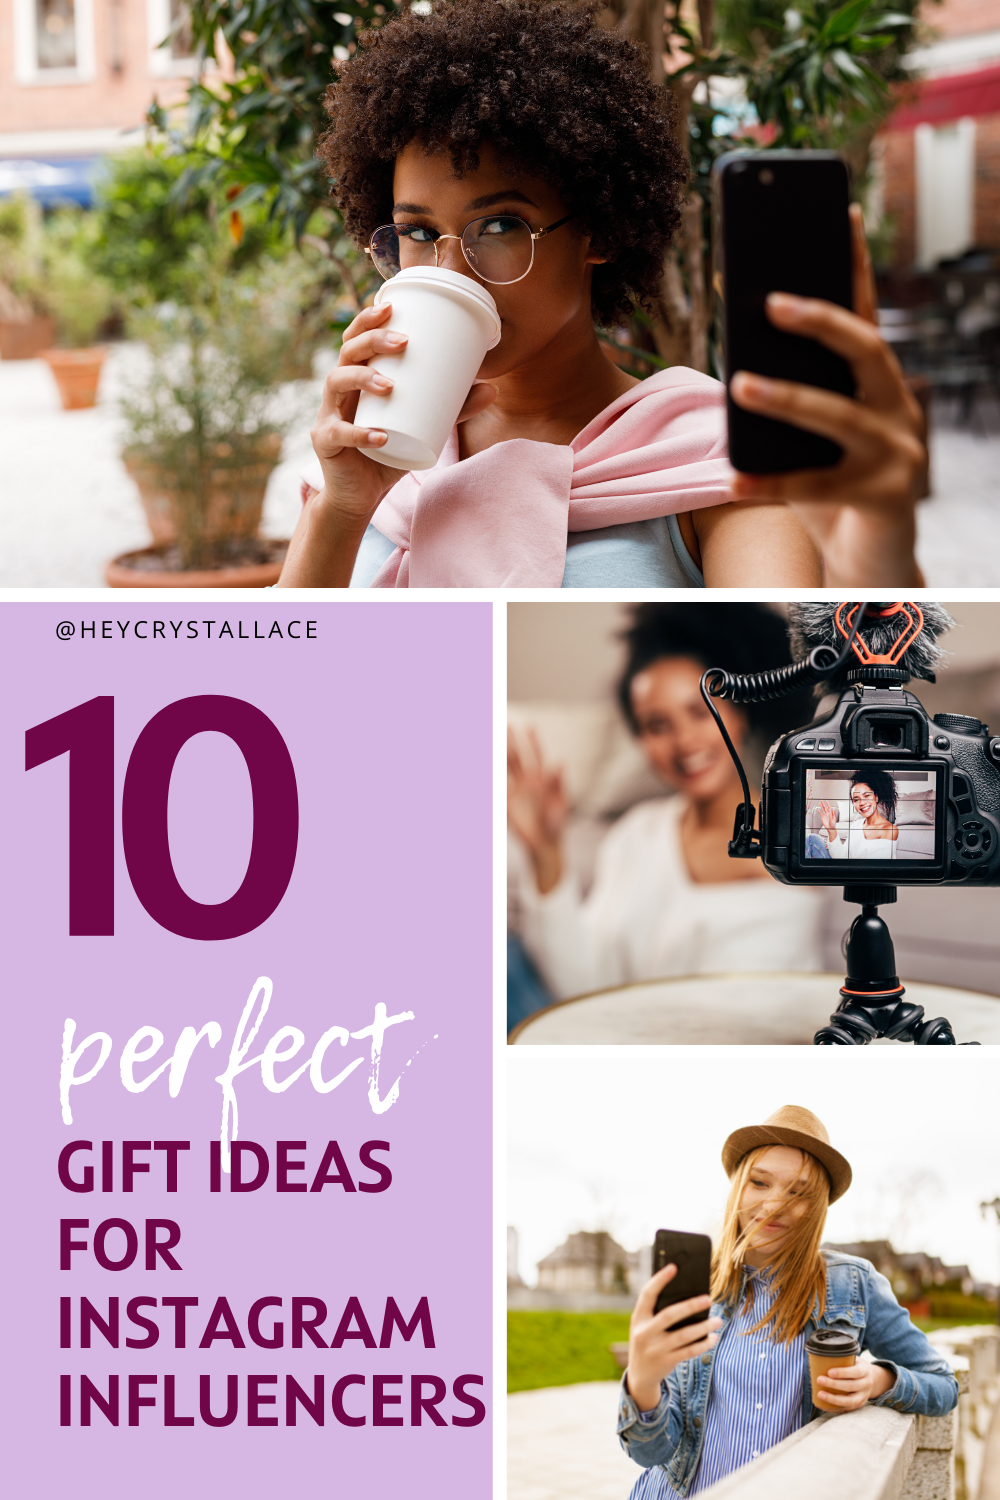 10 Perfect Gift Ideas for Instagram Influencers